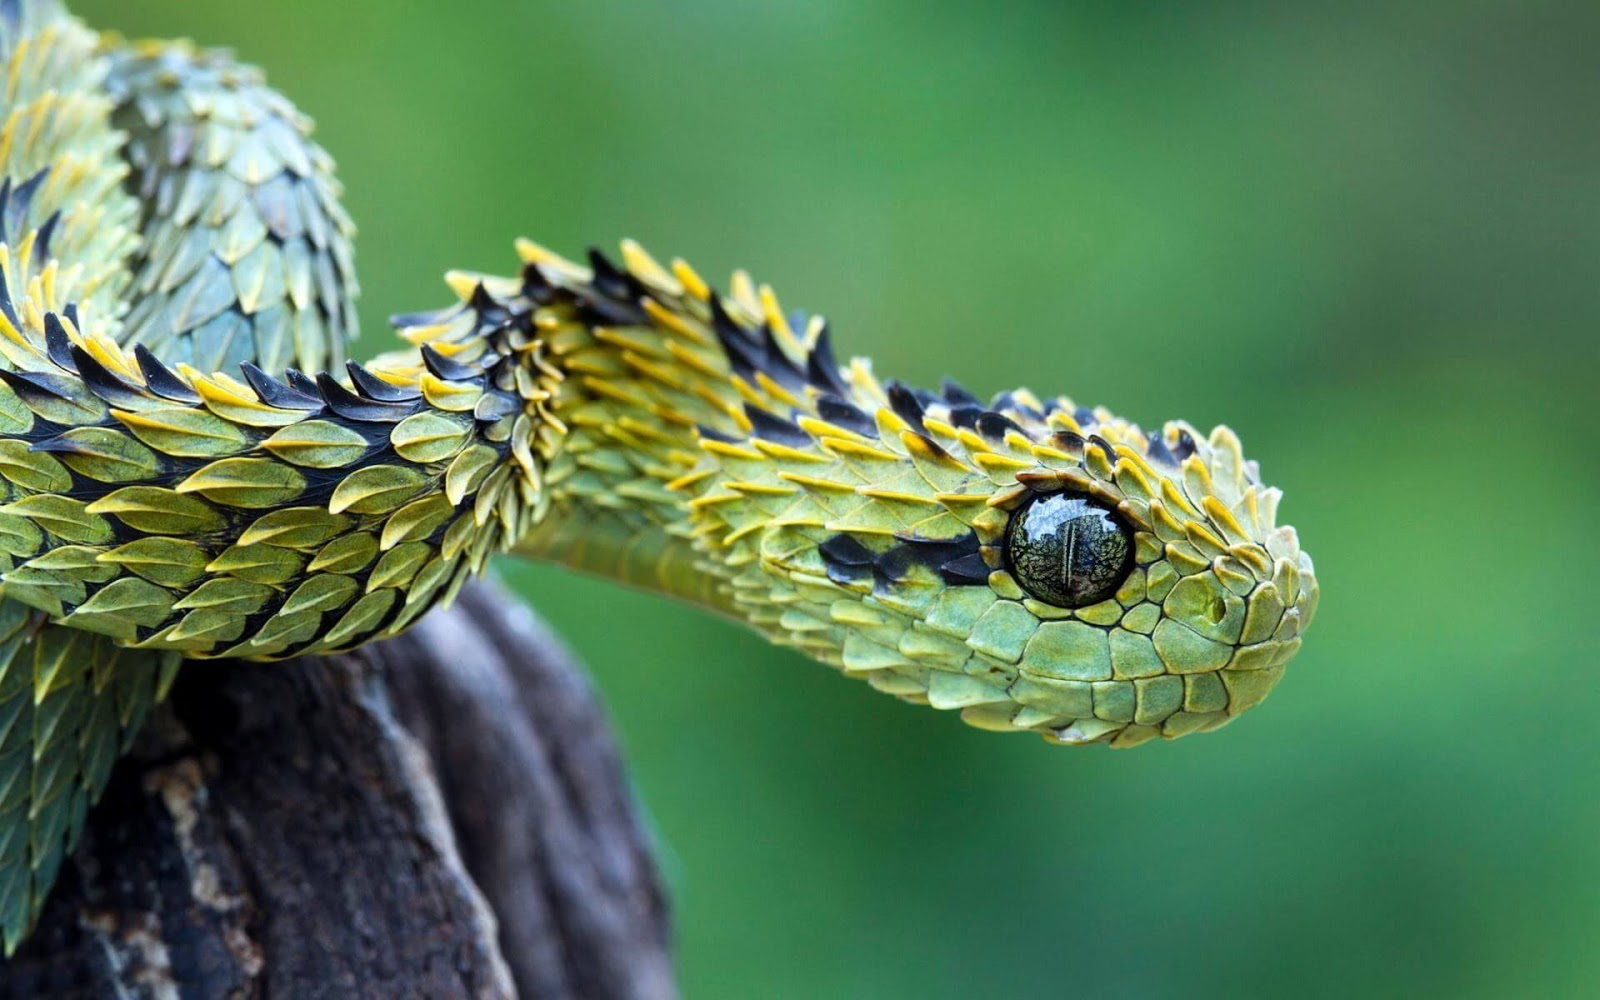 Download Snake HD Wallpaper Images Your Or 4K UHD 5K 8K Ultra Desktop Monitors Android Mobiles Apple Iphone Laptop Screen And Tablets